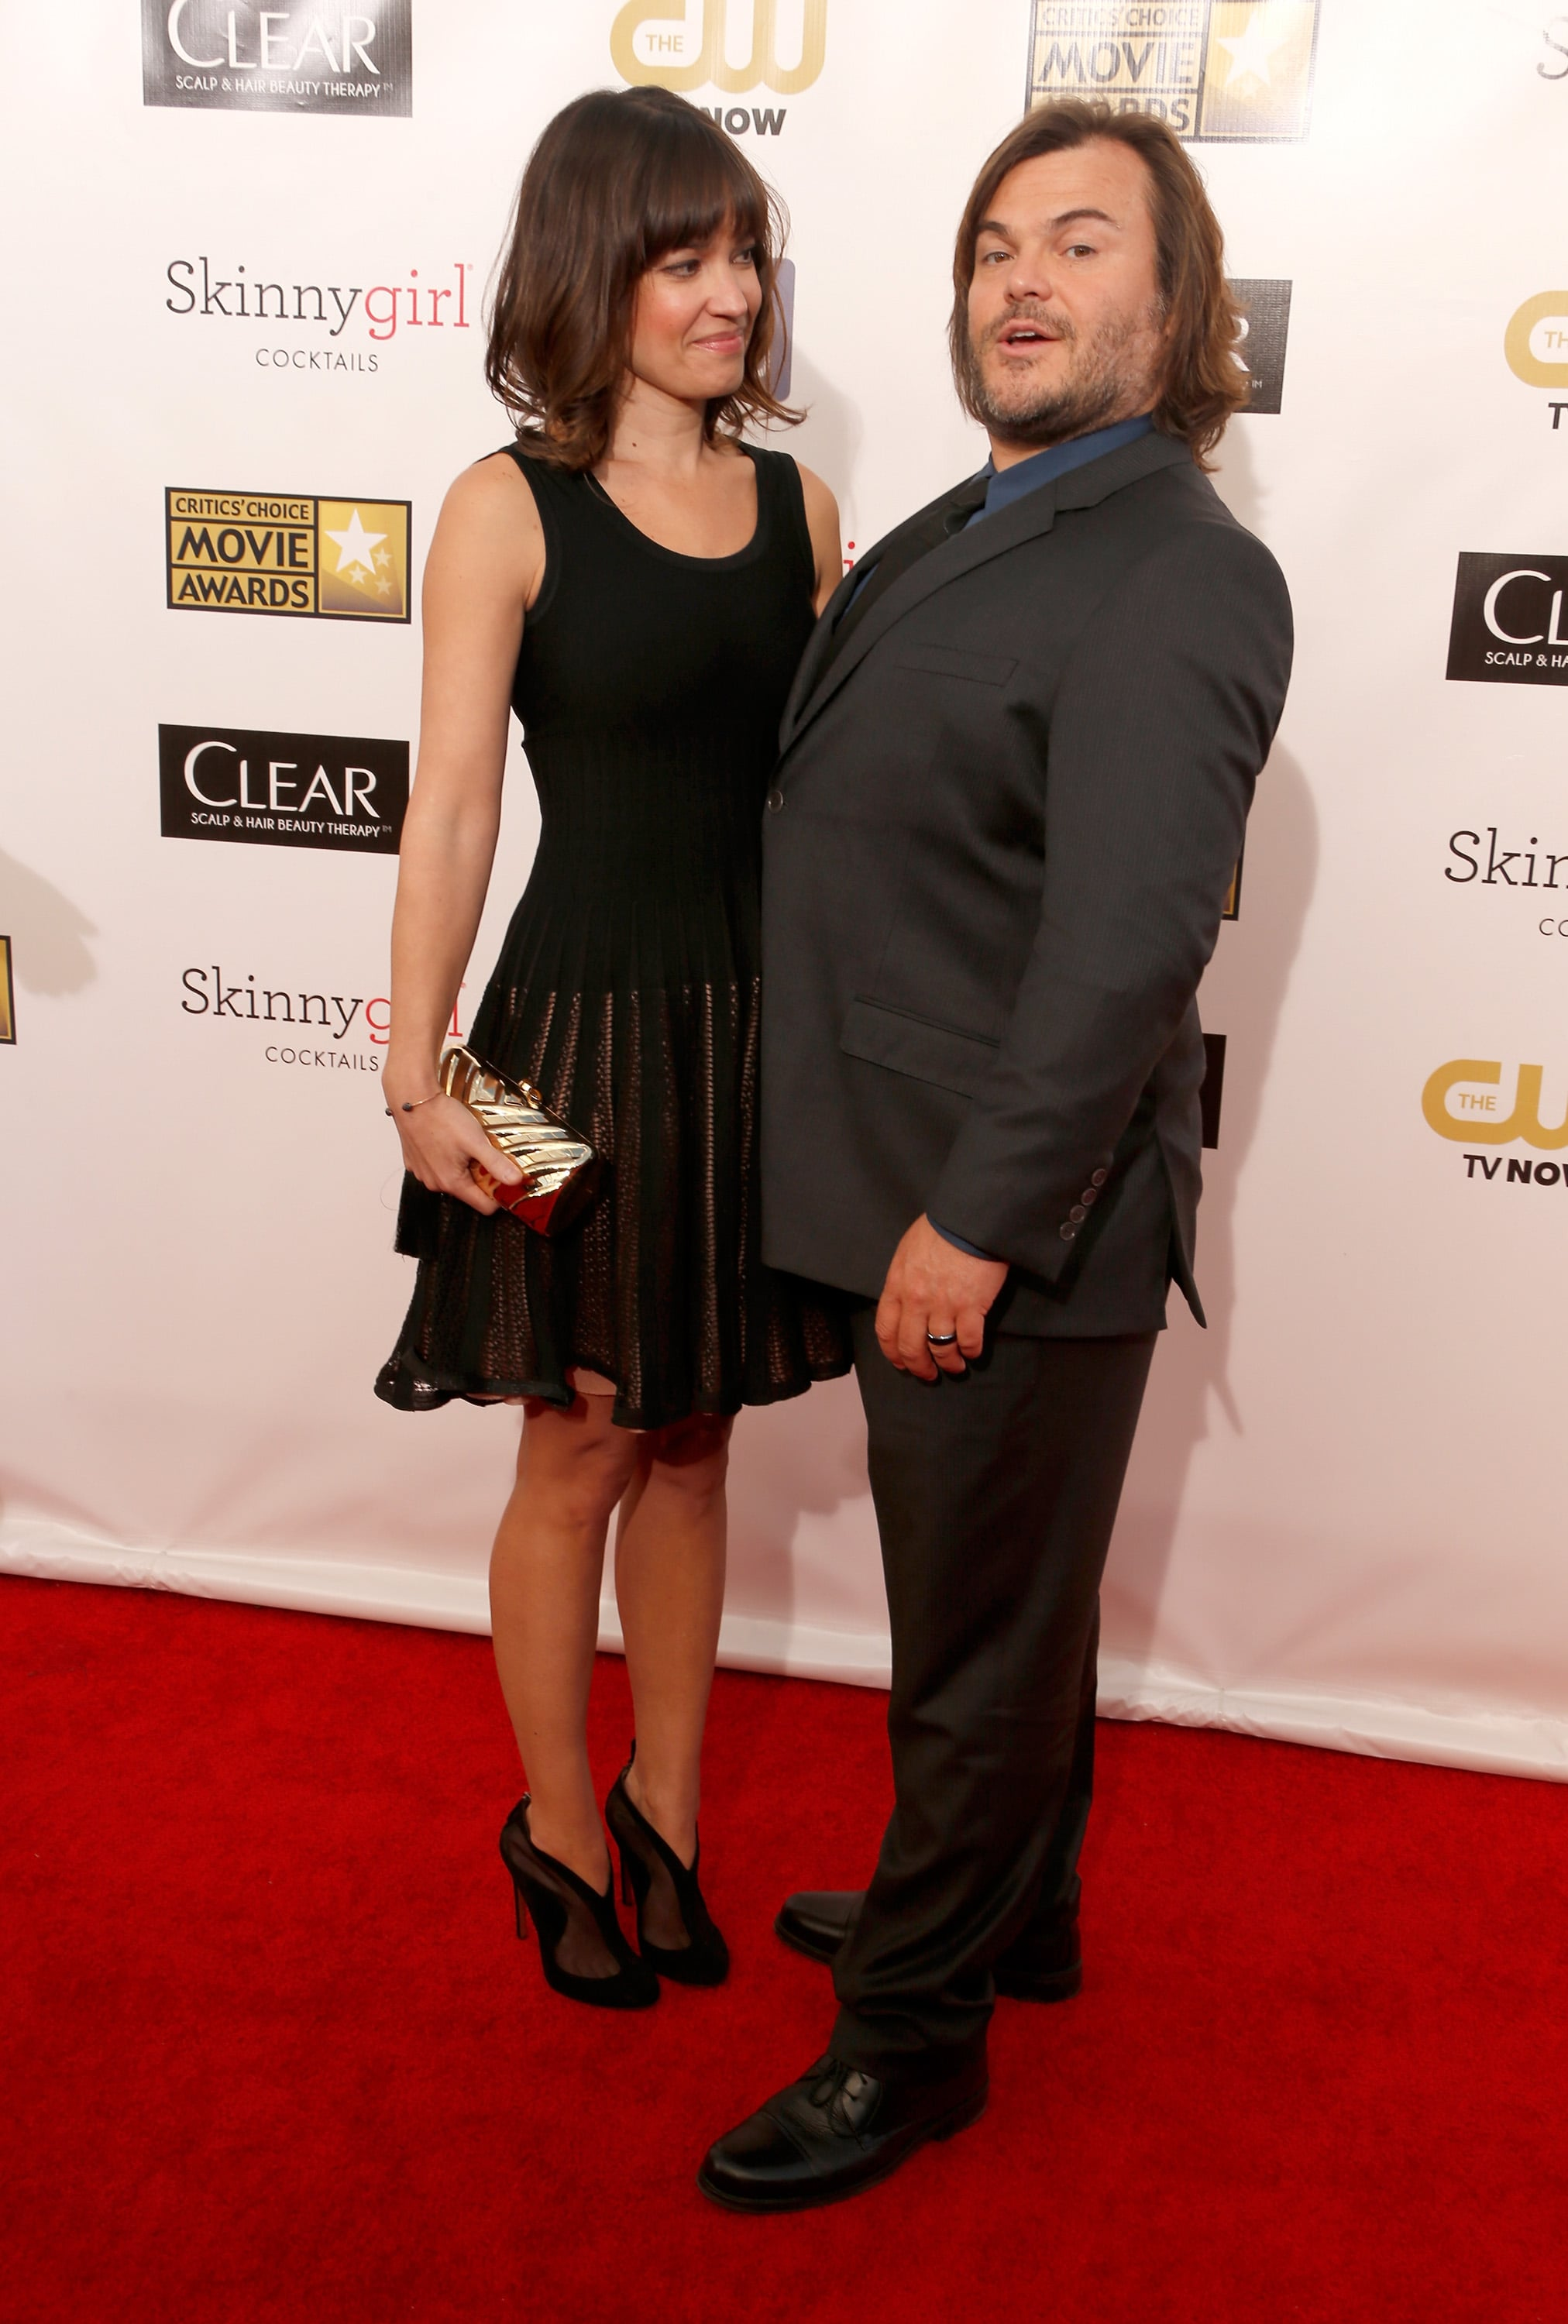 Jack black and tanya haden celeb couples are too cute at the critics